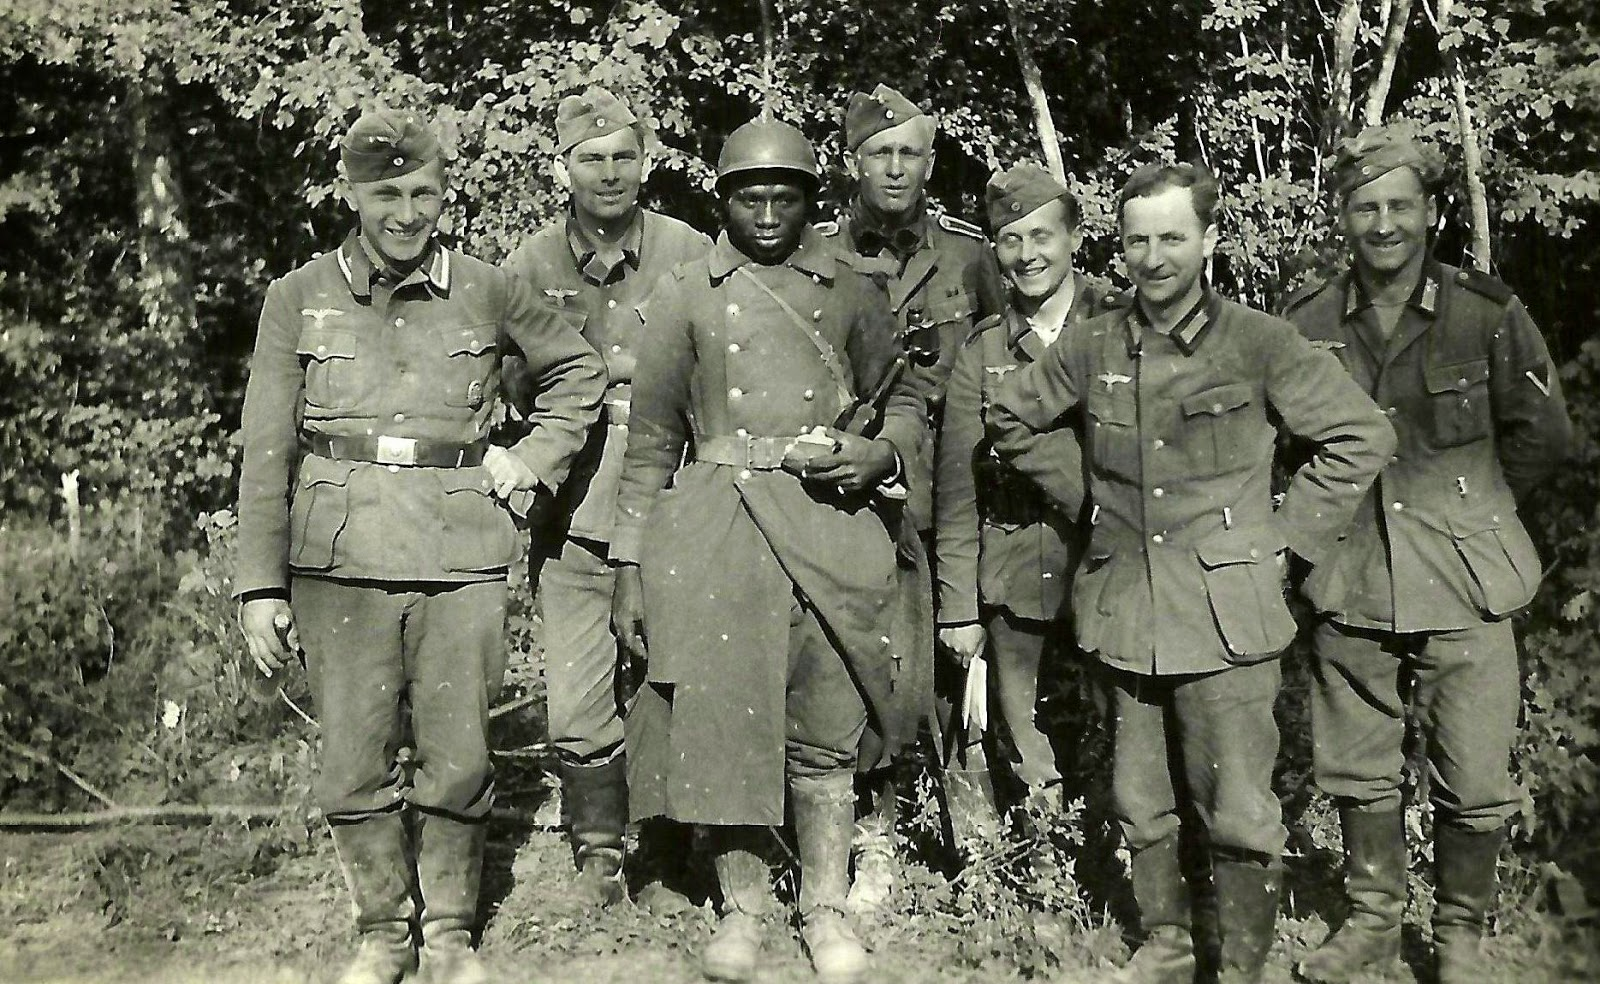 Ultimate Collection Of Rare Historical Photos. A Big Piece Of History (200 Pictures) - Germans posing